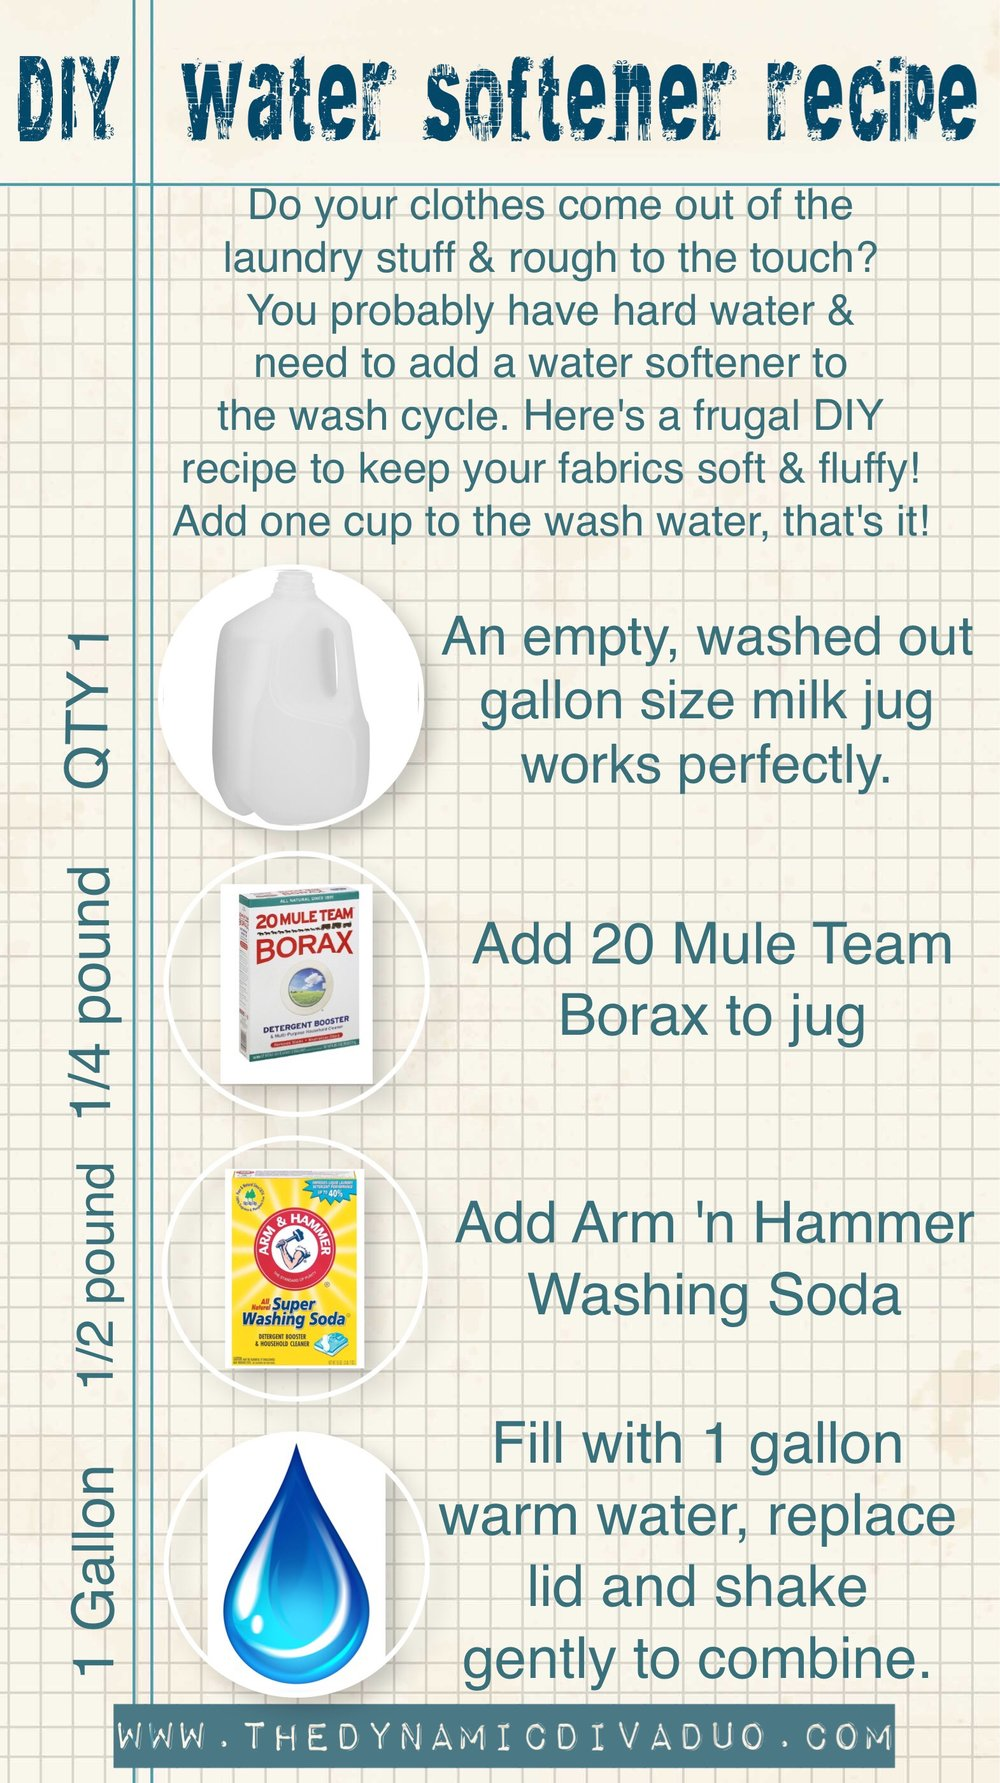 DIY water softener recipe